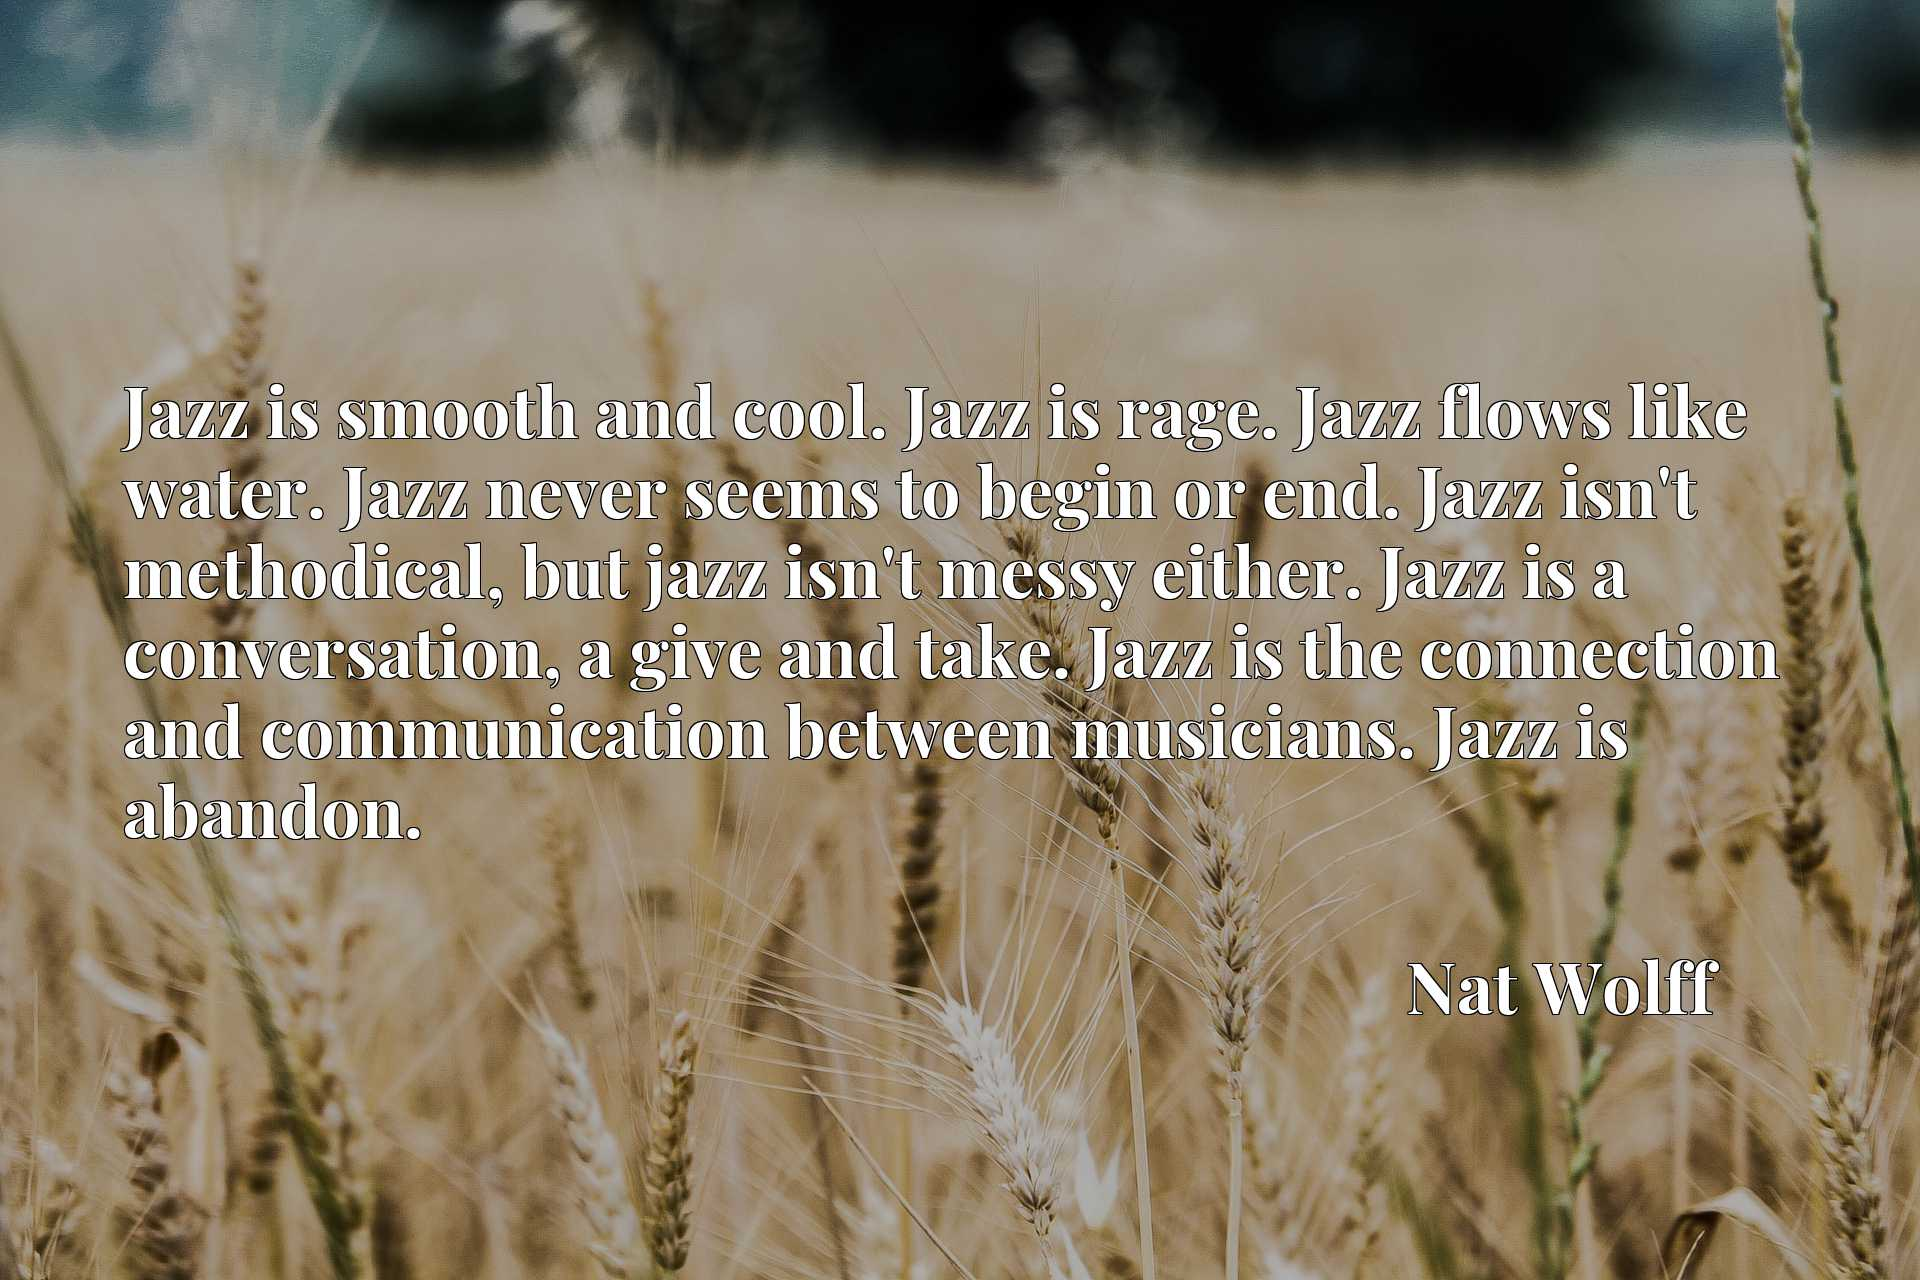 Jazz is smooth and cool. Jazz is rage. Jazz flows like water. Jazz never seems to begin or end. Jazz isn't methodical, but jazz isn't messy either. Jazz is a conversation, a give and take. Jazz is the connection and communication between musicians. Jazz is abandon.